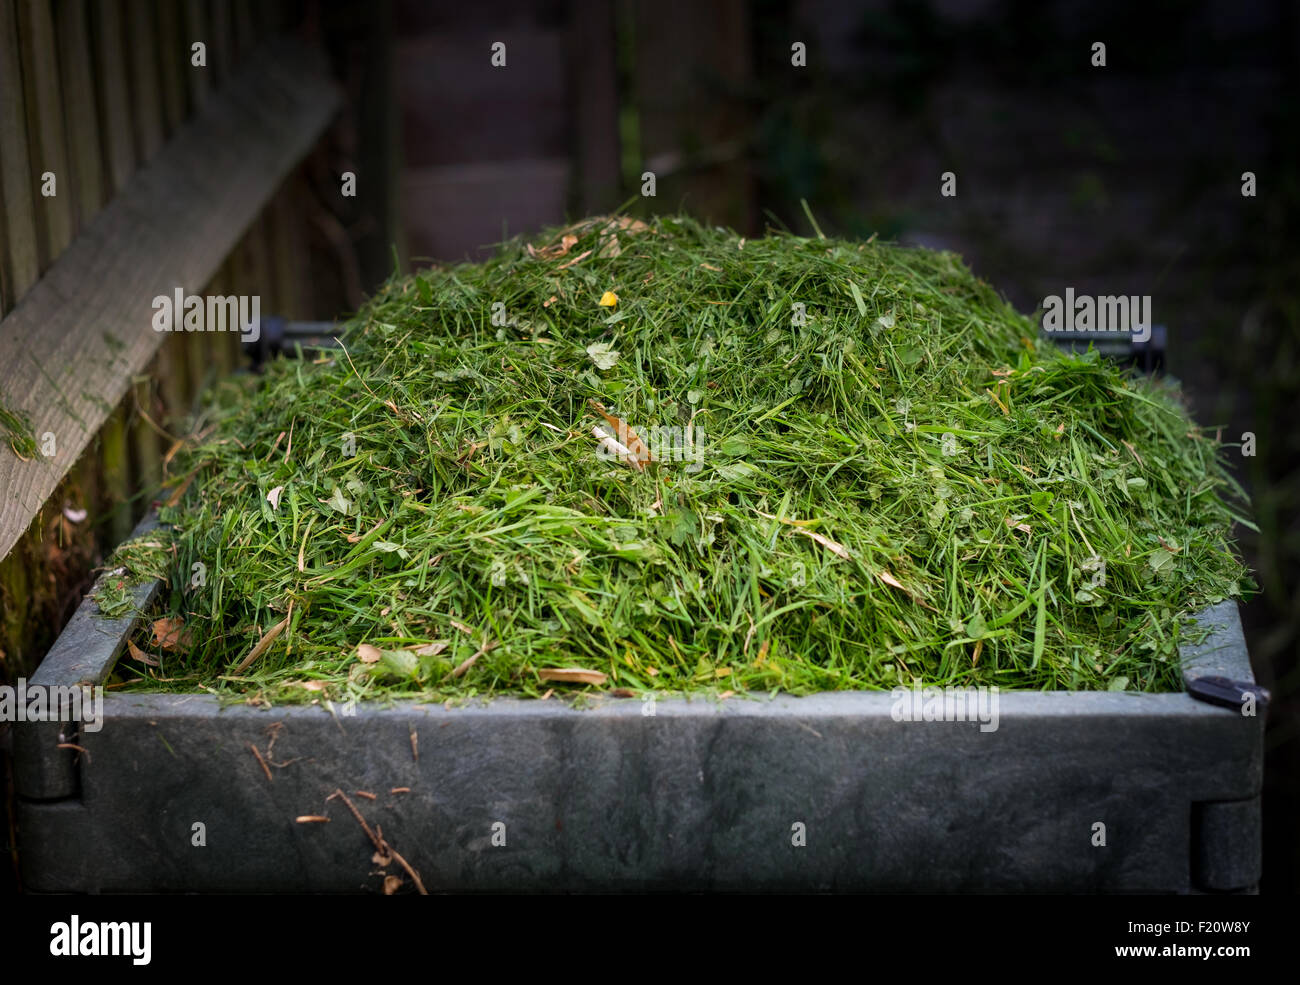 Grass cutting in a compost bin - Stock Image